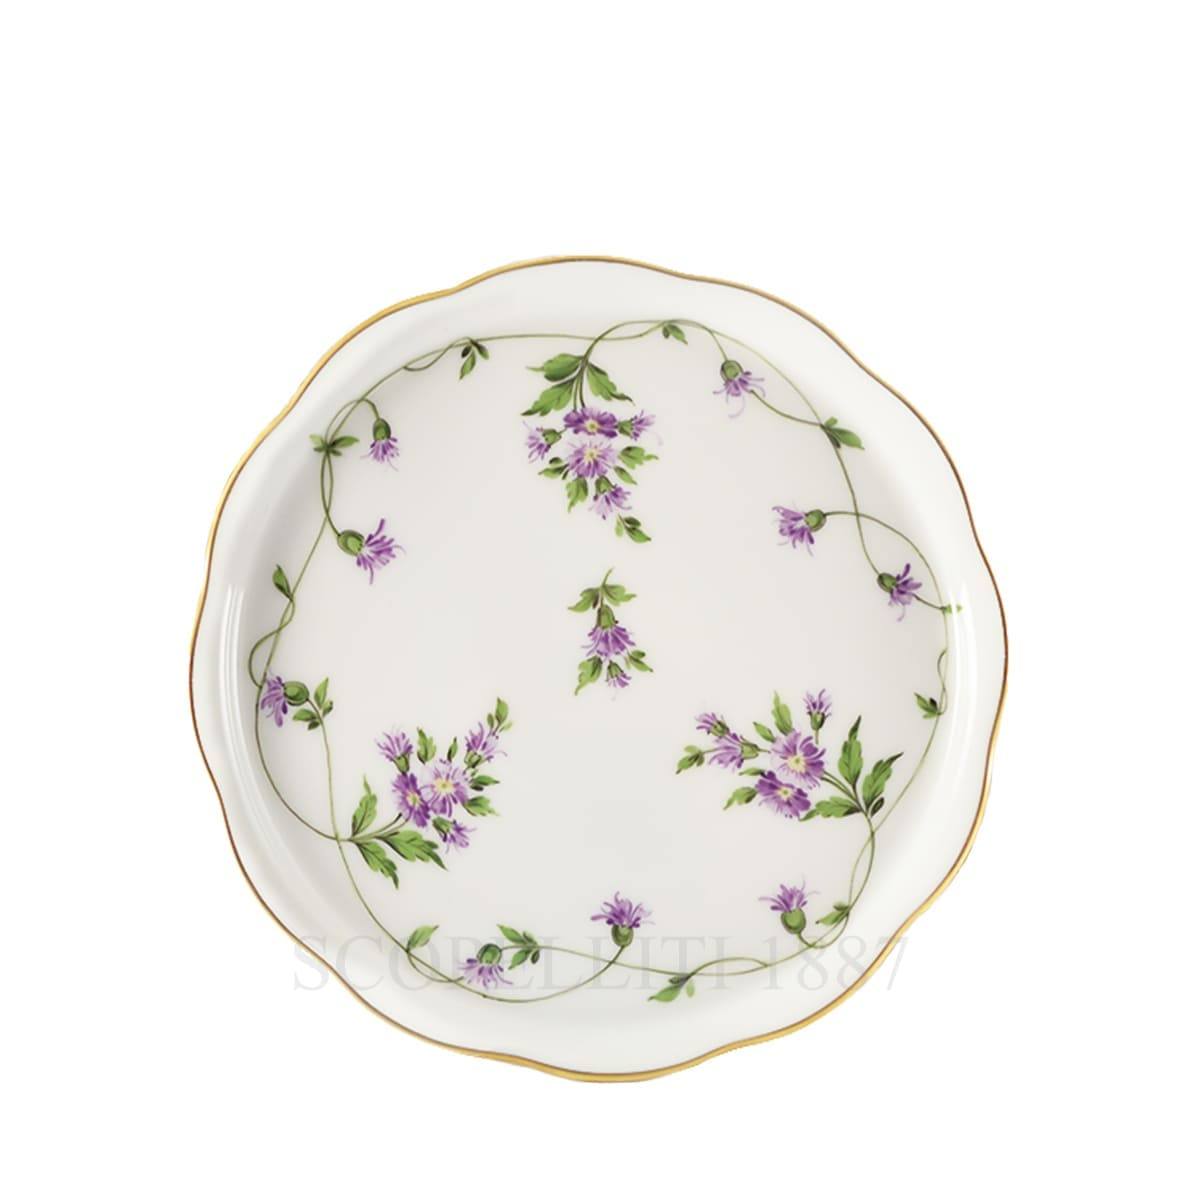 herend handpainted porcelain coaster